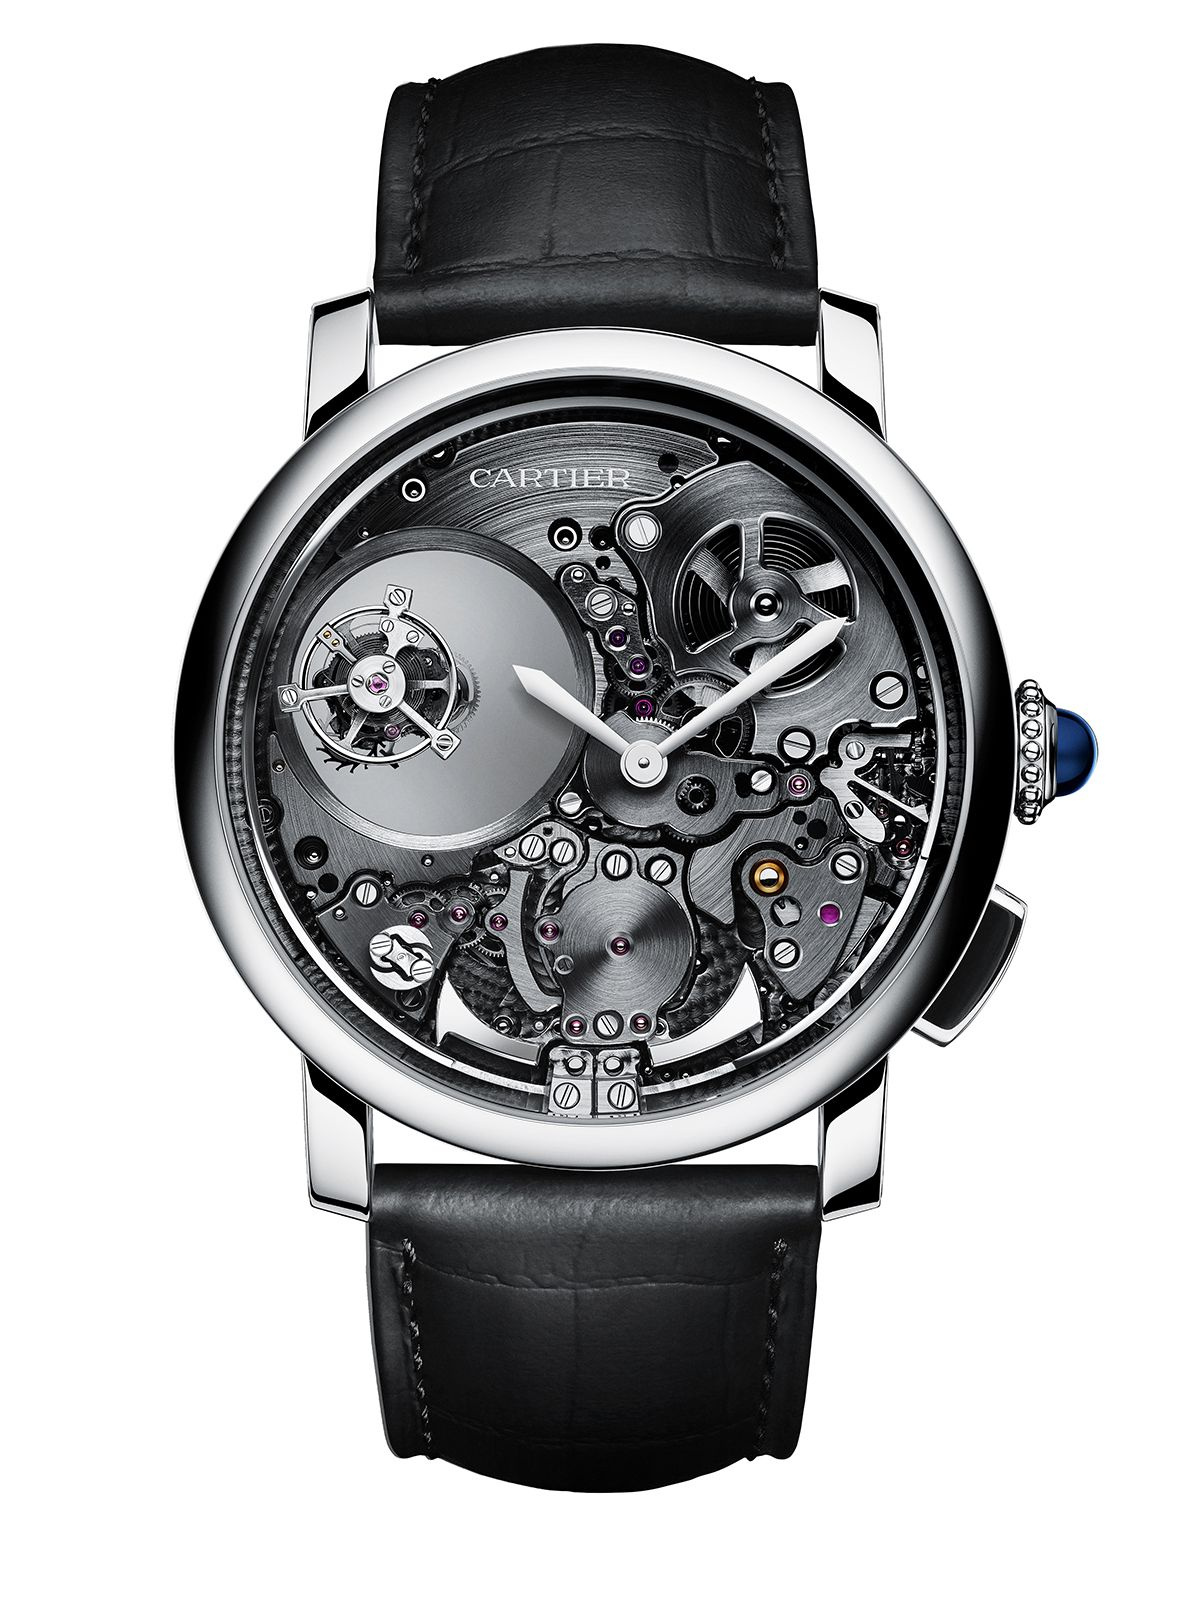 Cartier Rotonde De Cartier Minute Repeater Mysterious Double Tourbillon Watches For Men Beautiful Watches Mens Accessories